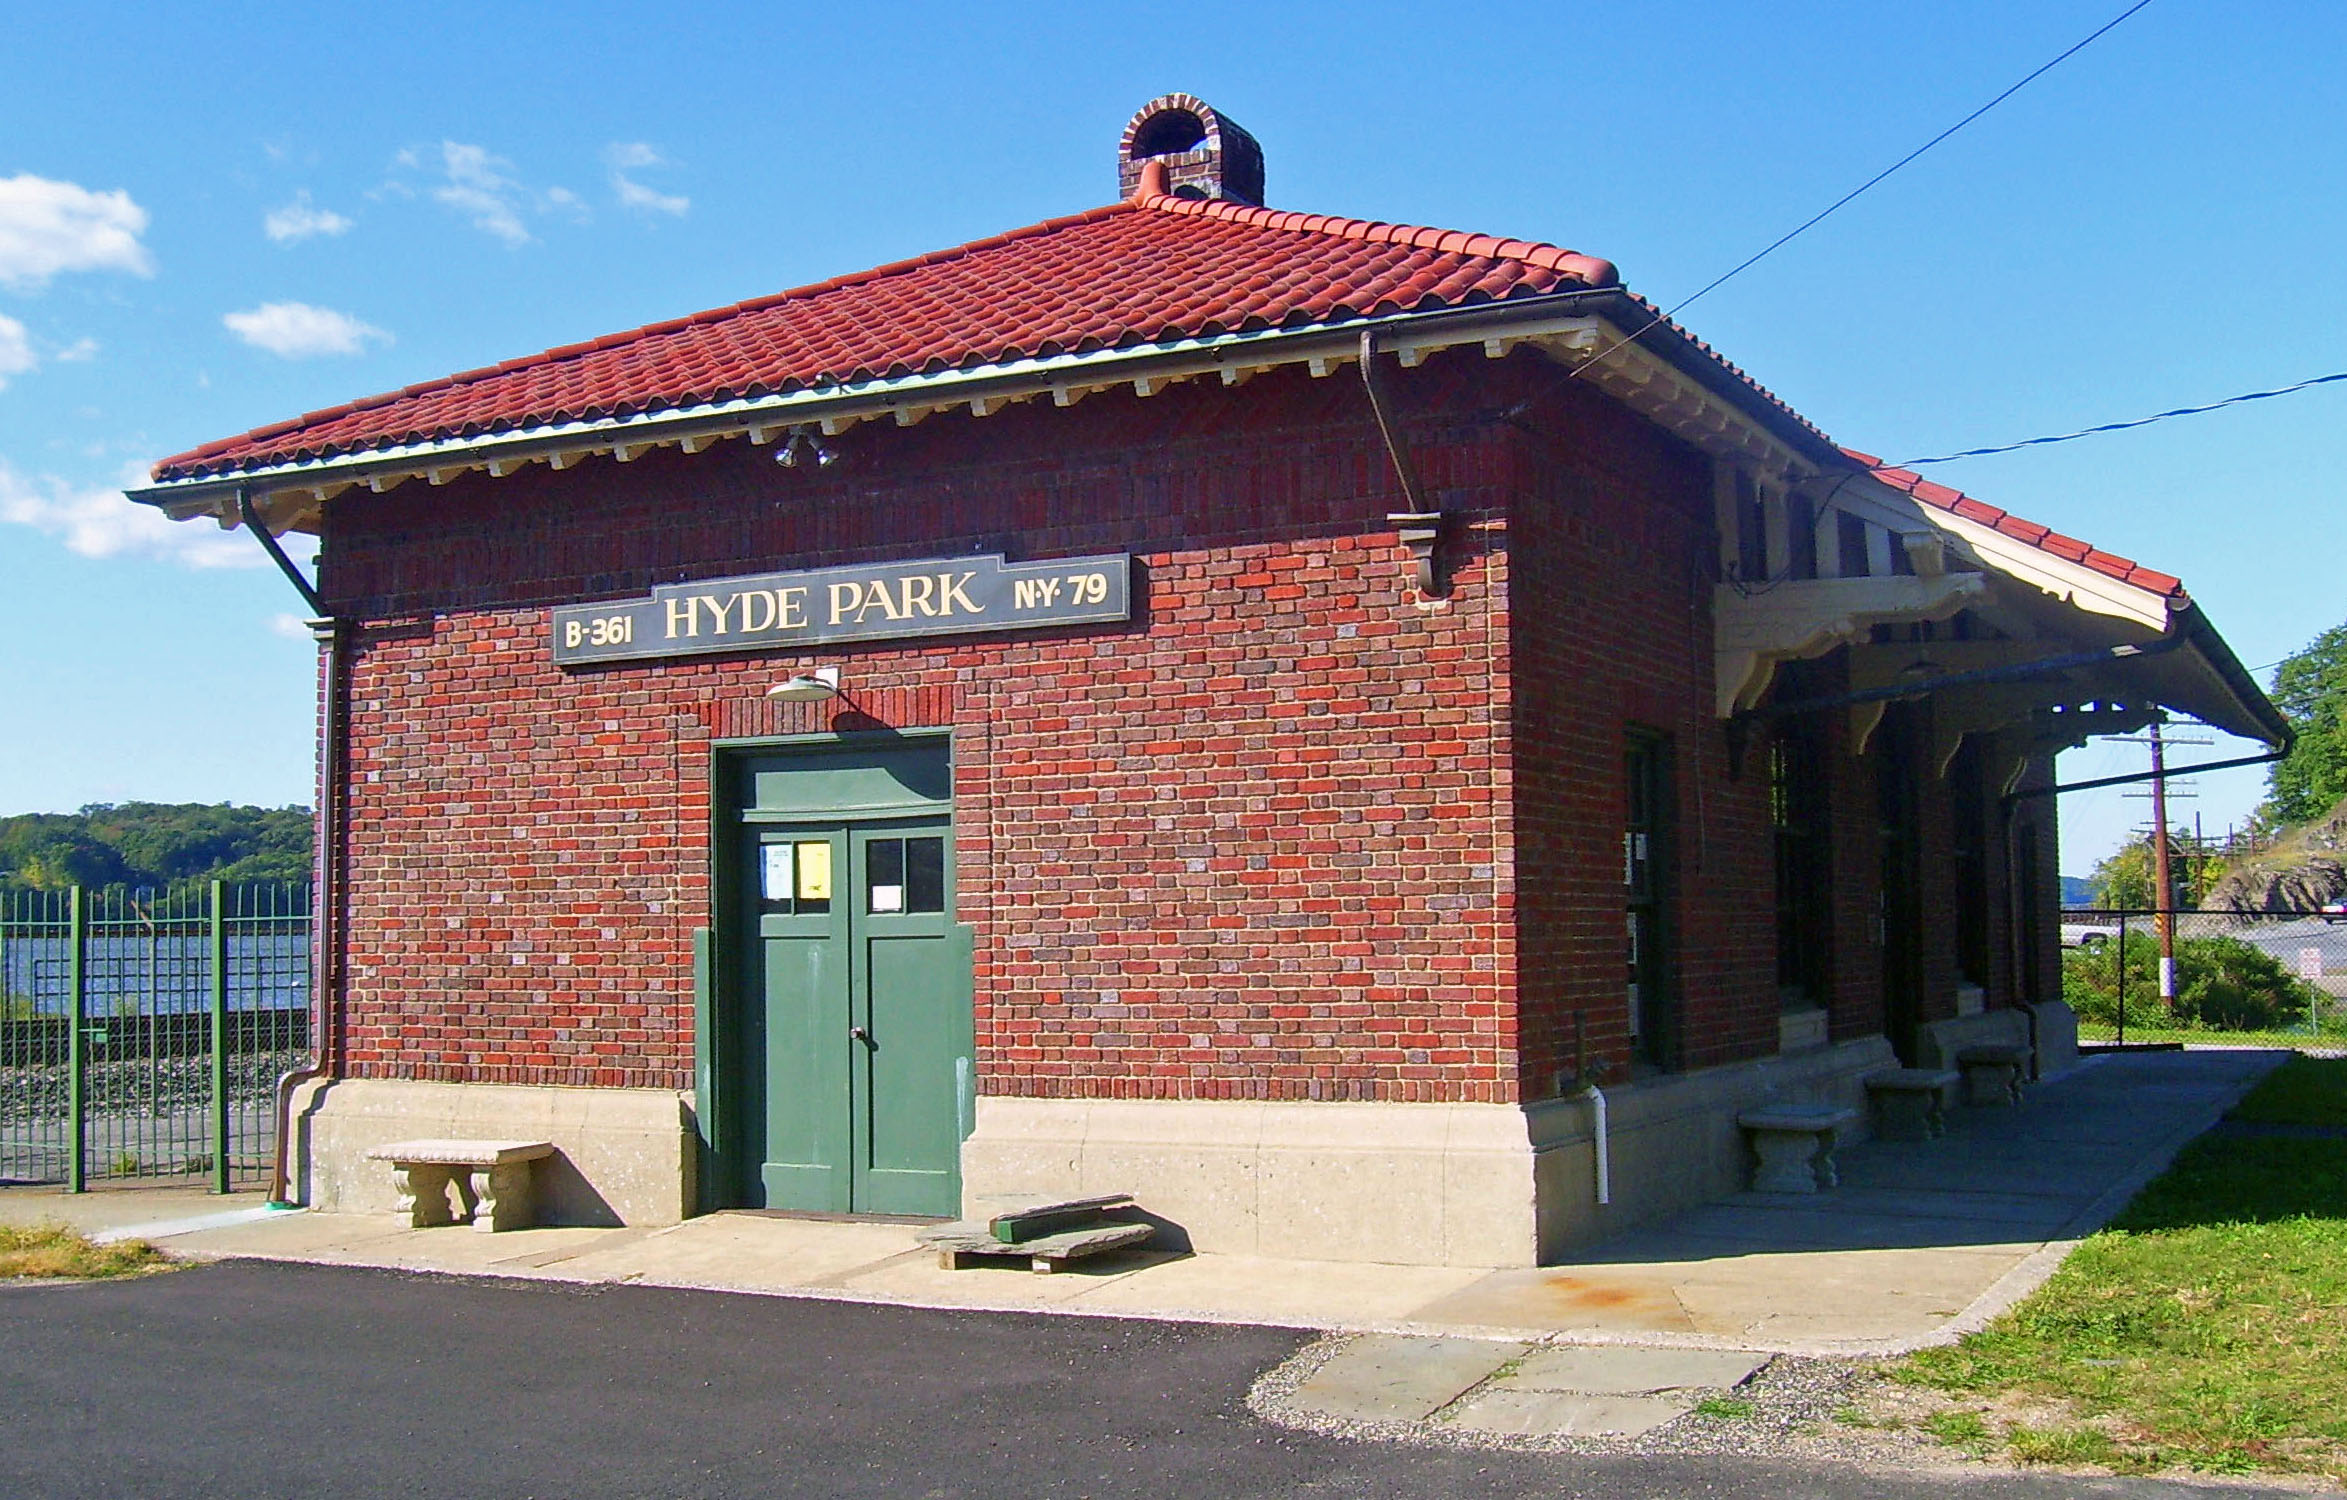 National Railroad Museum >> File:Old Hyde Park, NY, train station.jpg - Wikipedia